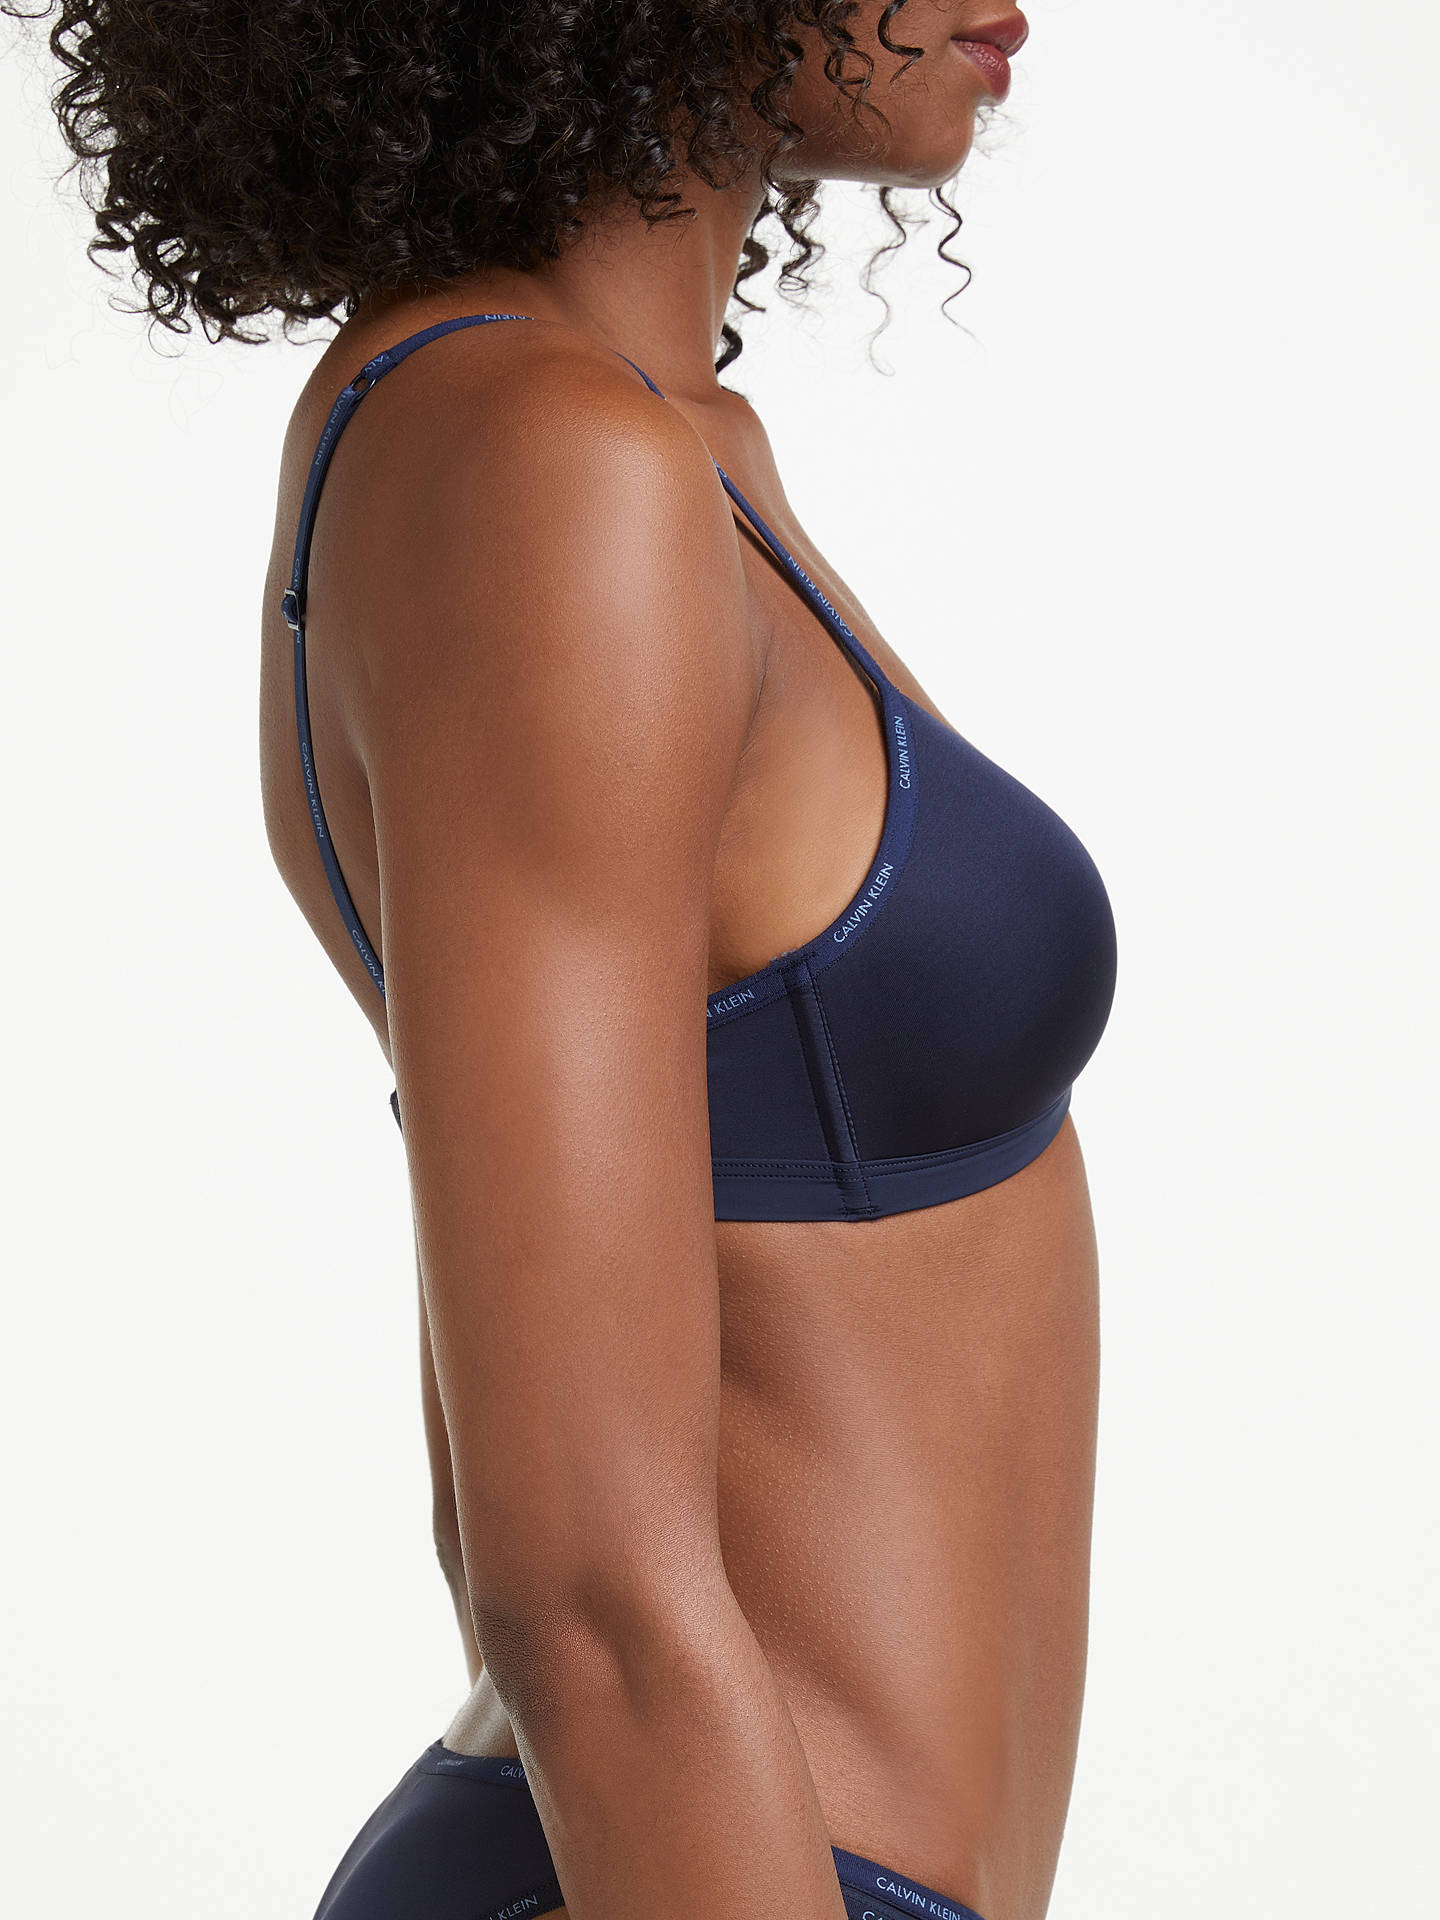 Buy Calvin Klein Underwear Youthful Lined Triangle Bra, Shoreline, S Online at johnlewis.com